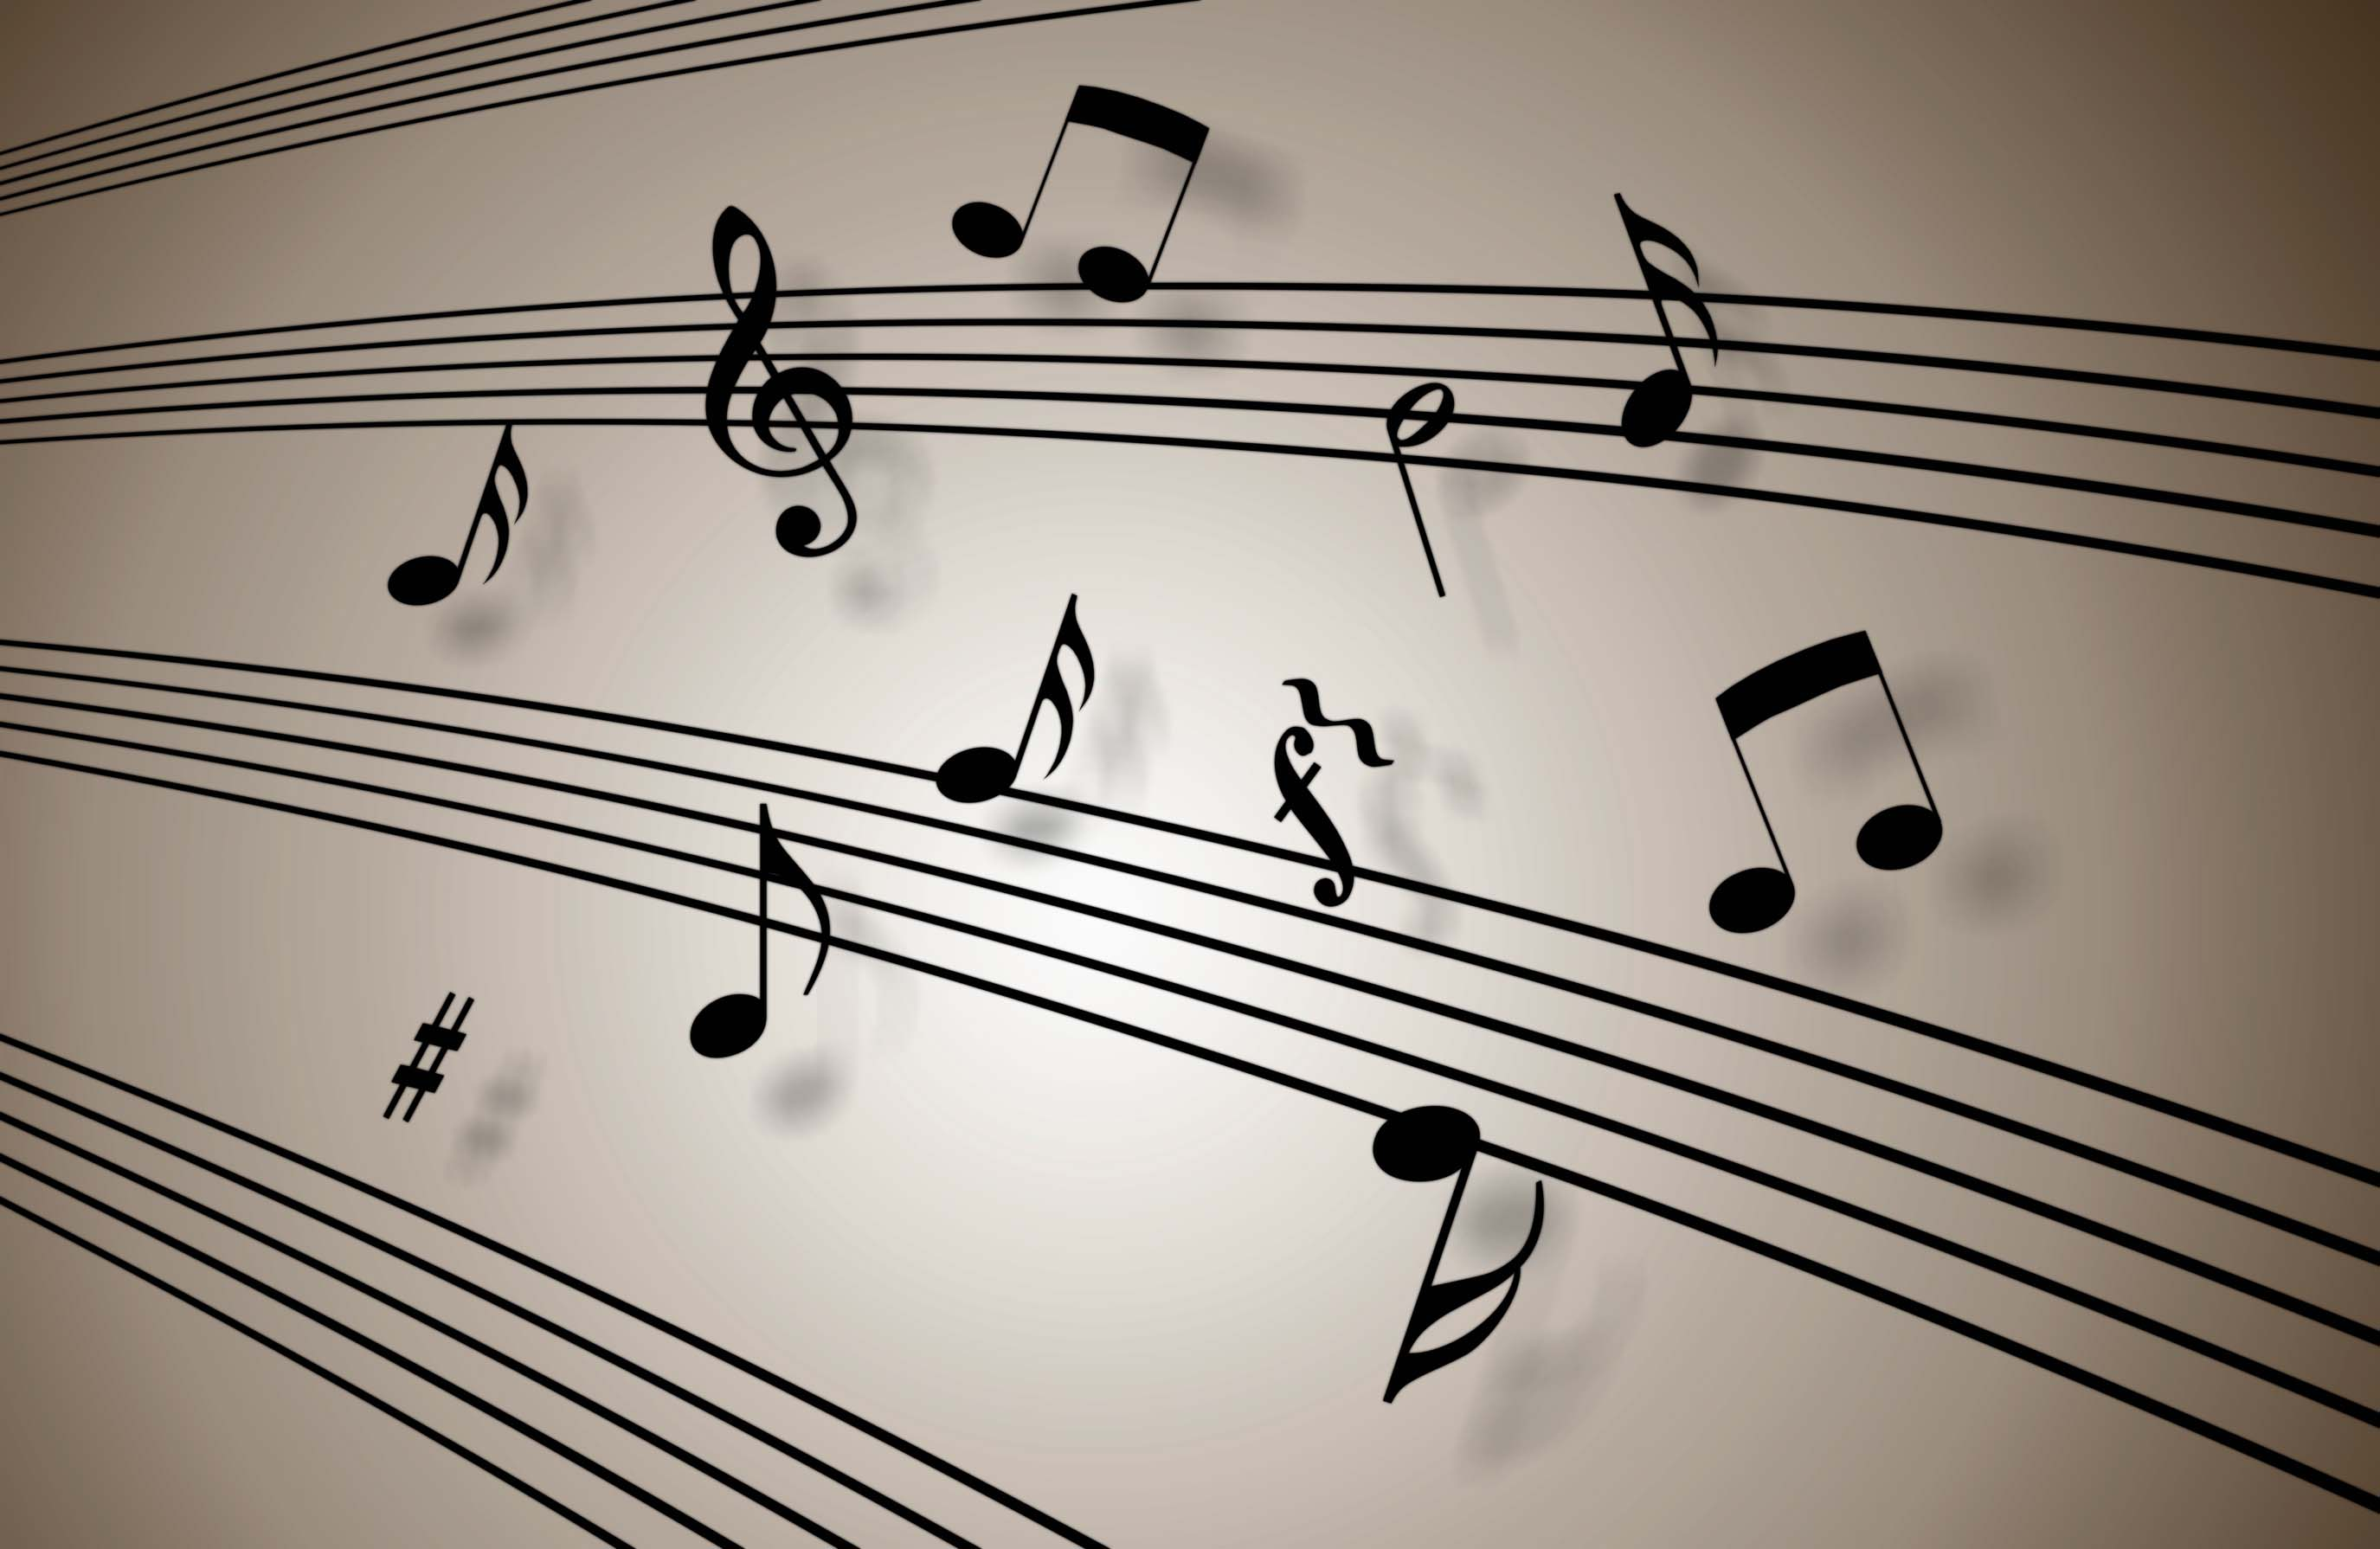 Free Music Notes Wallpapers 16210 2750x1790 px ~ HDWallSource